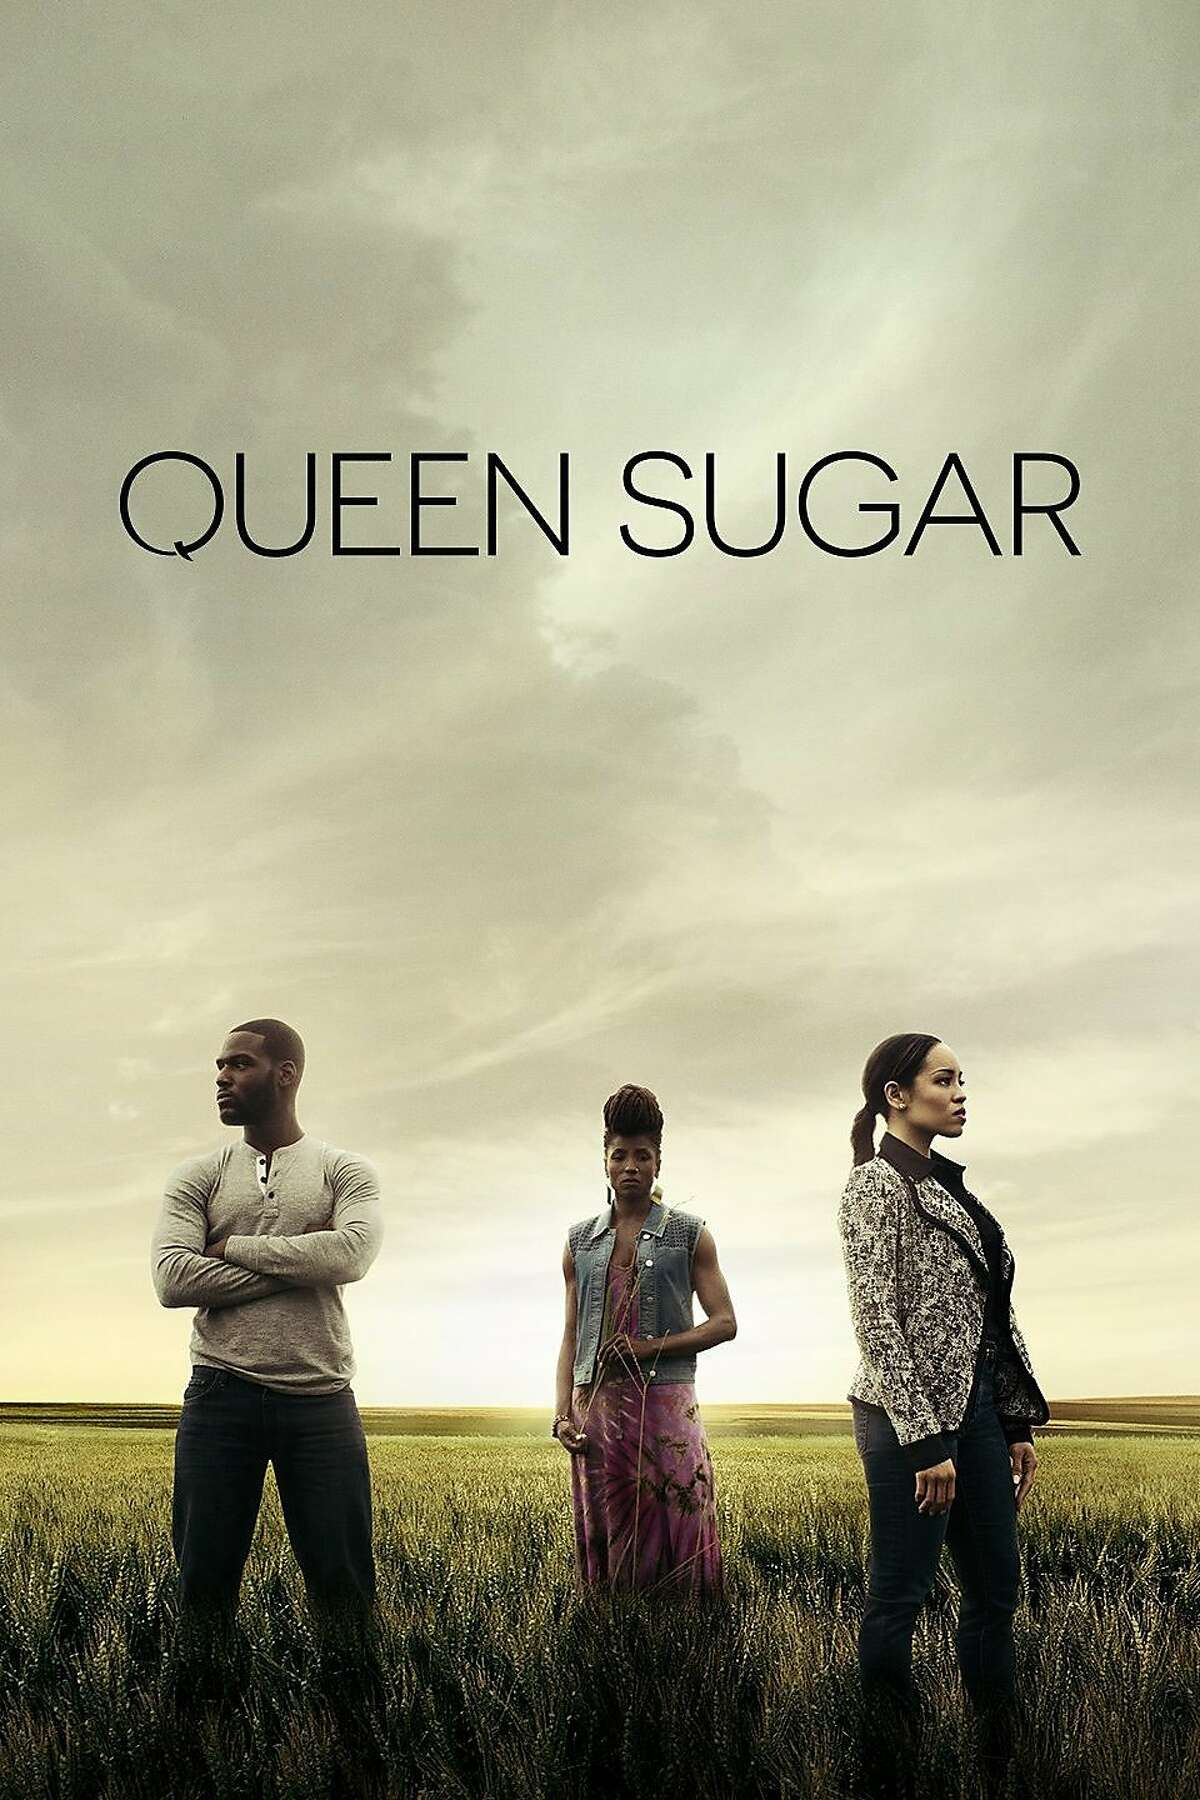 """Natalie Baszile's novel """"Queen Sugar"""" is now a television series on Oprah's OWN."""